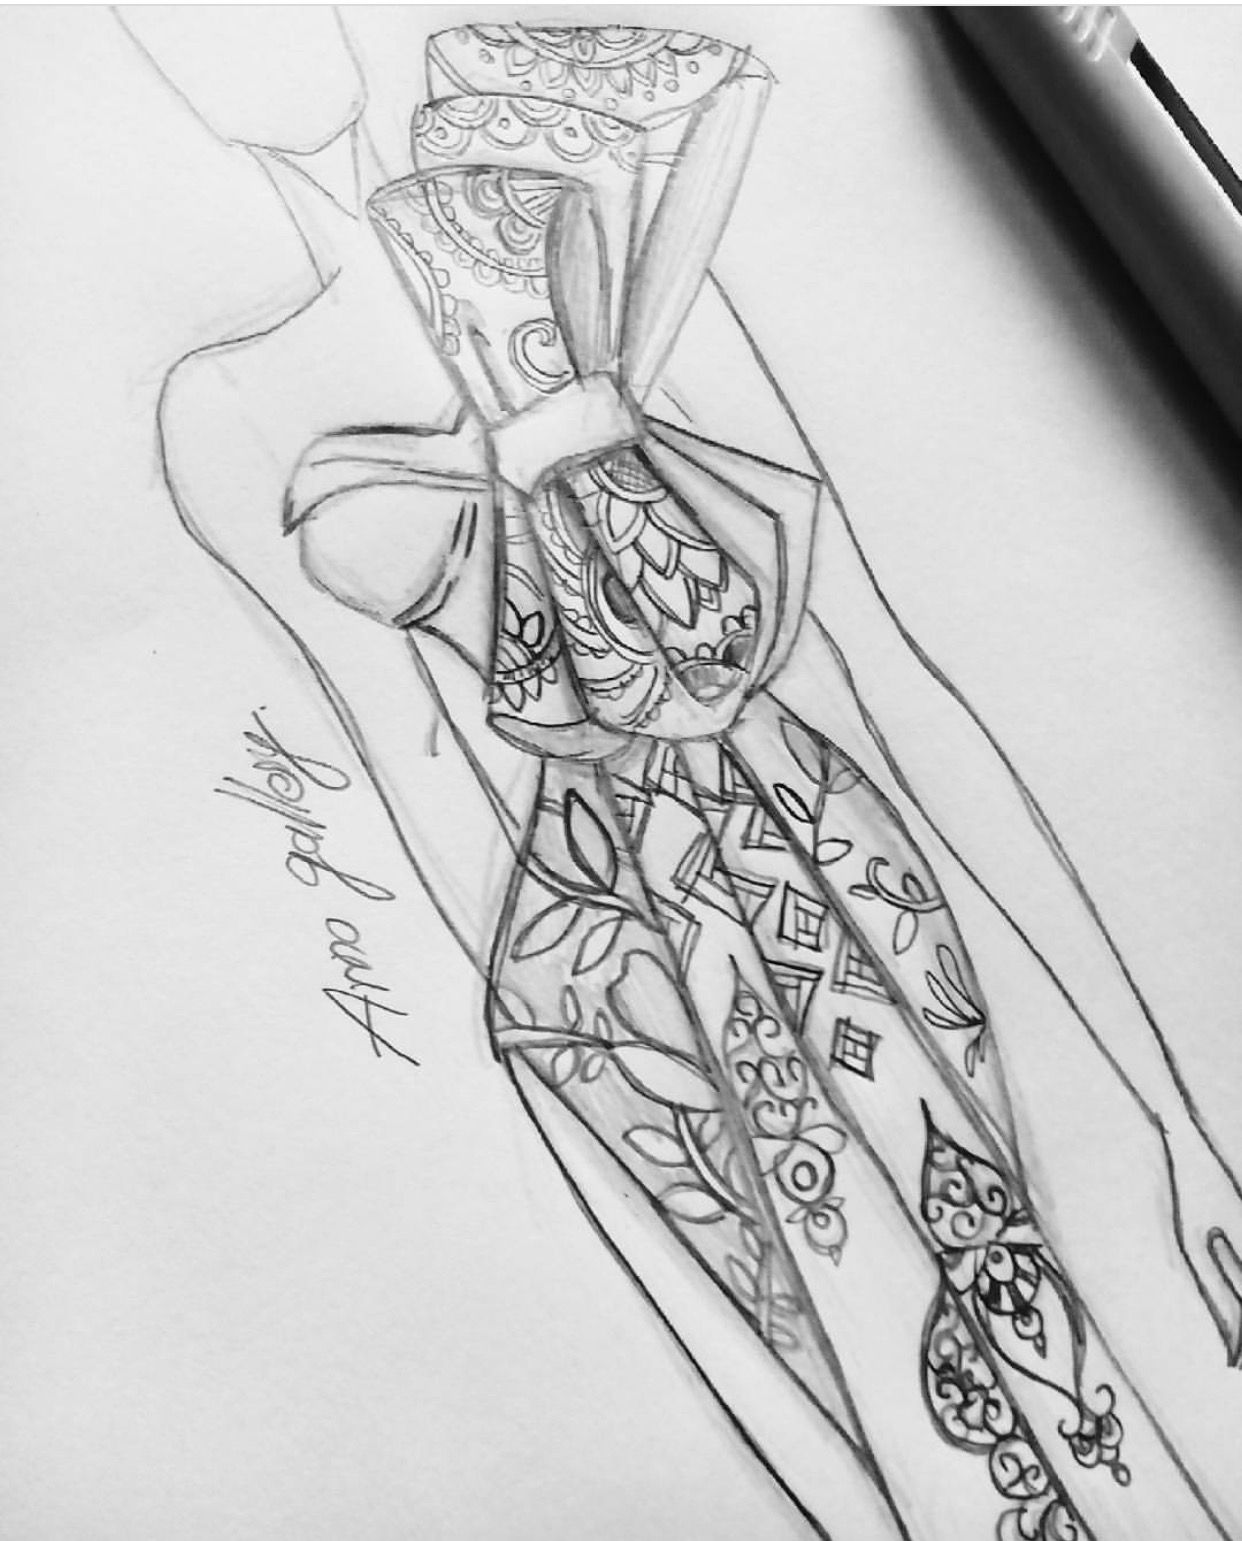 Pattern Art ⚛️ #PencilSketches #FashionIllustrations @arno_gallery| Be Inspirational ❥|Mz. Manerz: Being well dressed is a beautiful form of confidence, happiness & politeness